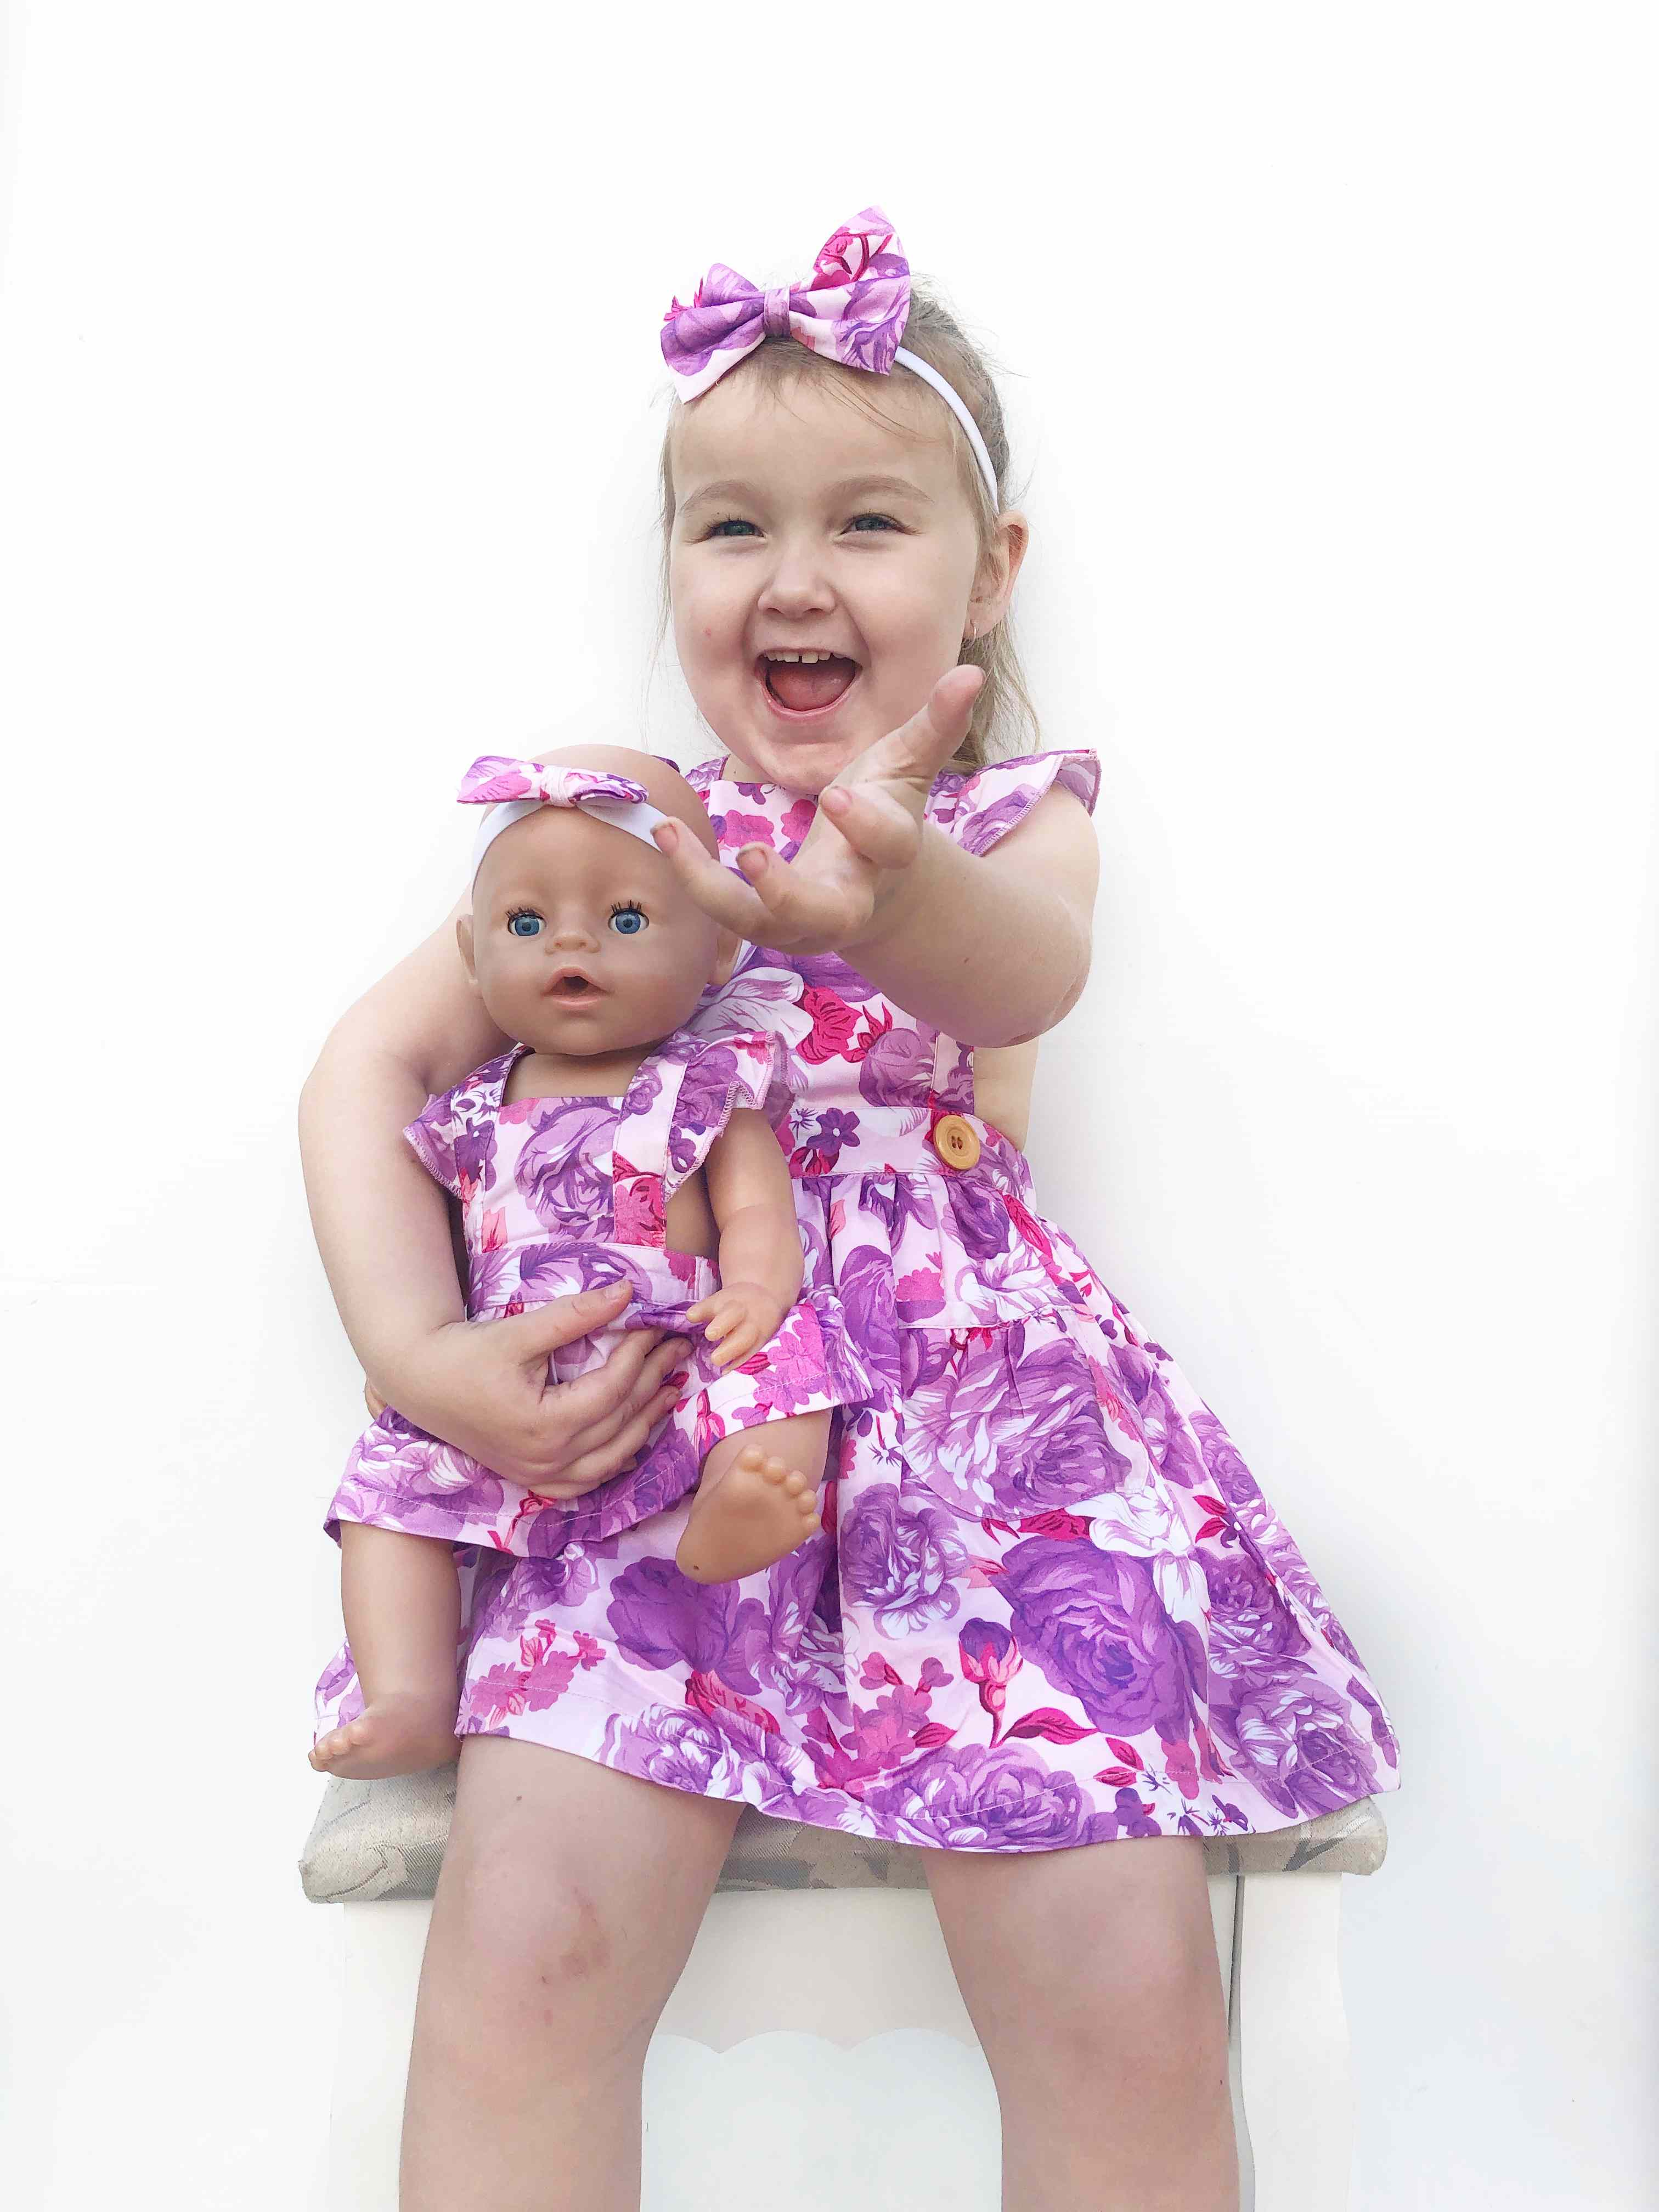 laughing girl holding her doll while on ciara flutter dress